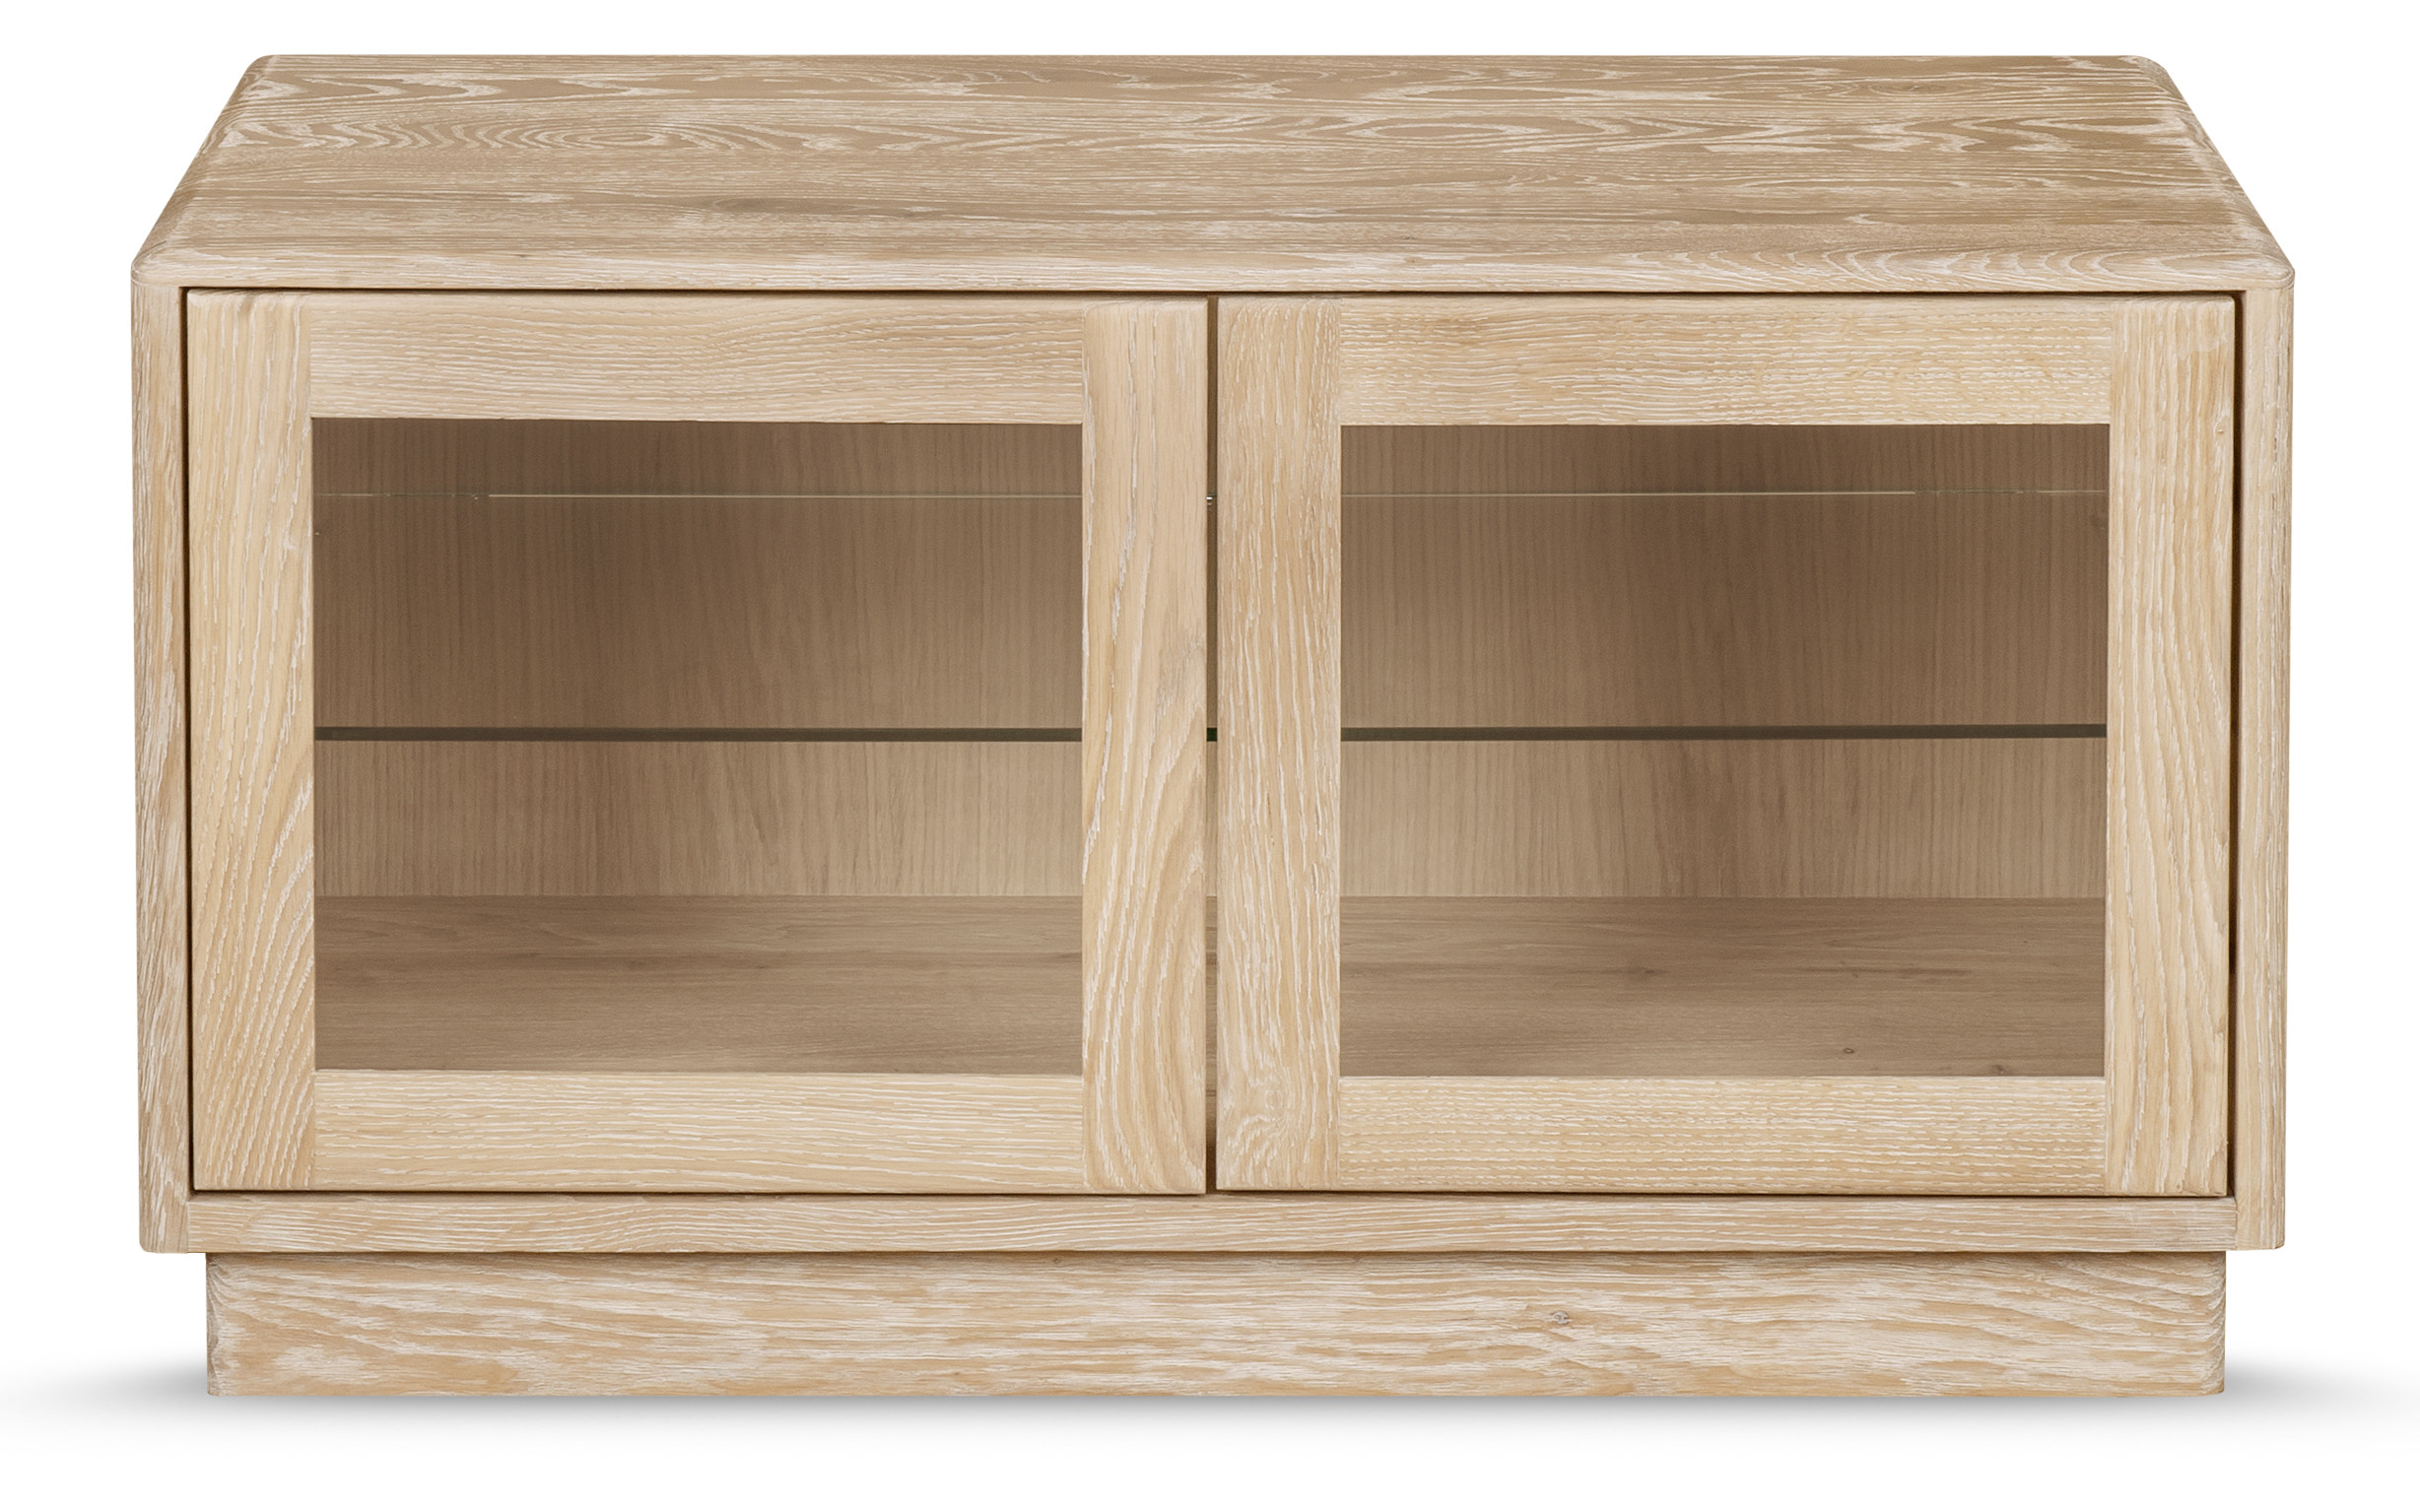 Widely Used Wooden Tv Stands With Glass Doors Intended For Portofino Tv Unit With Glass Doors (View 17 of 20)